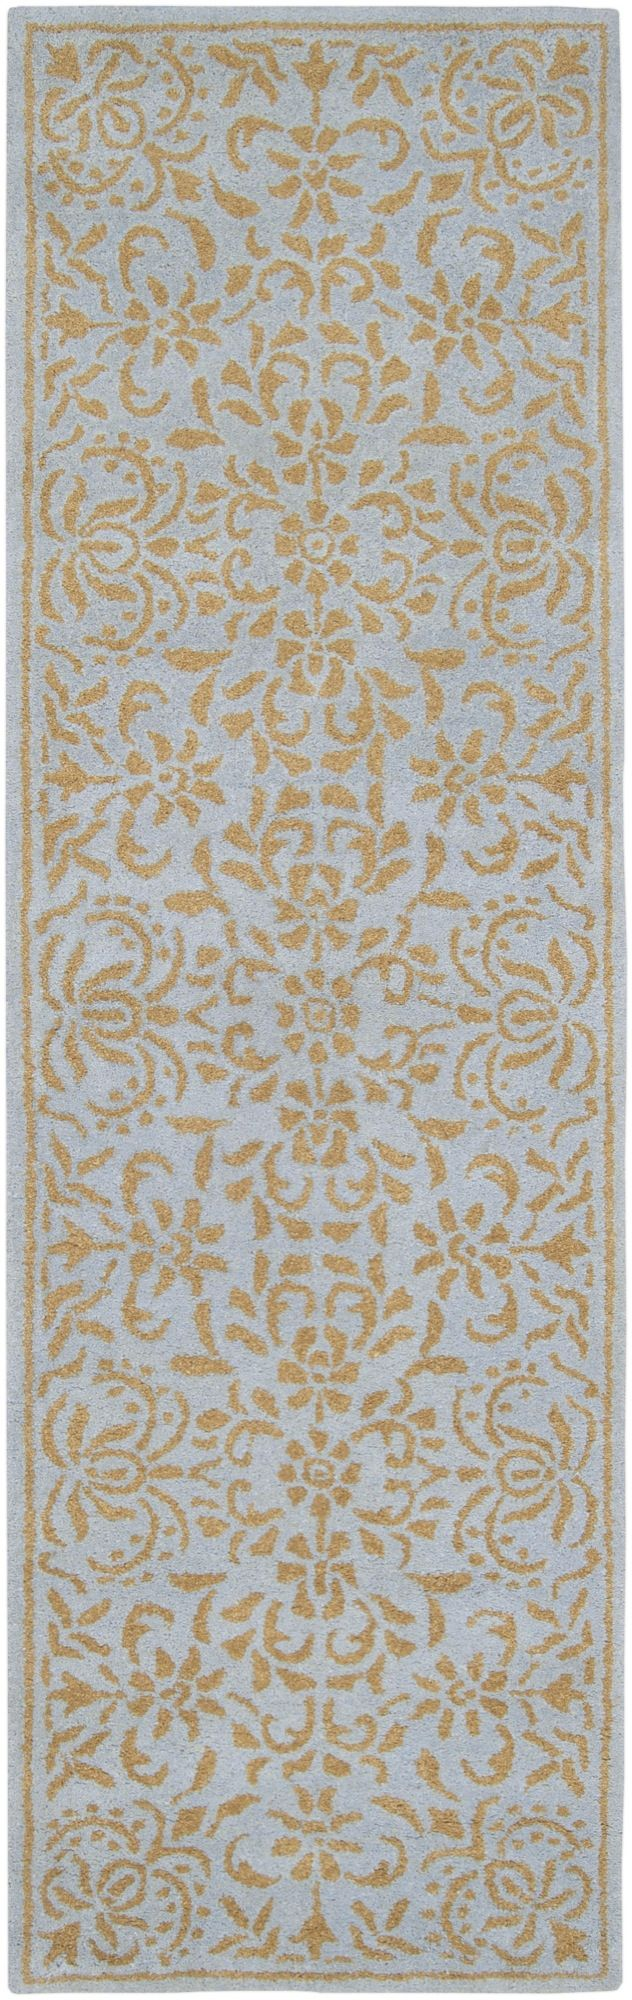 surya bombay transitional area rug collection